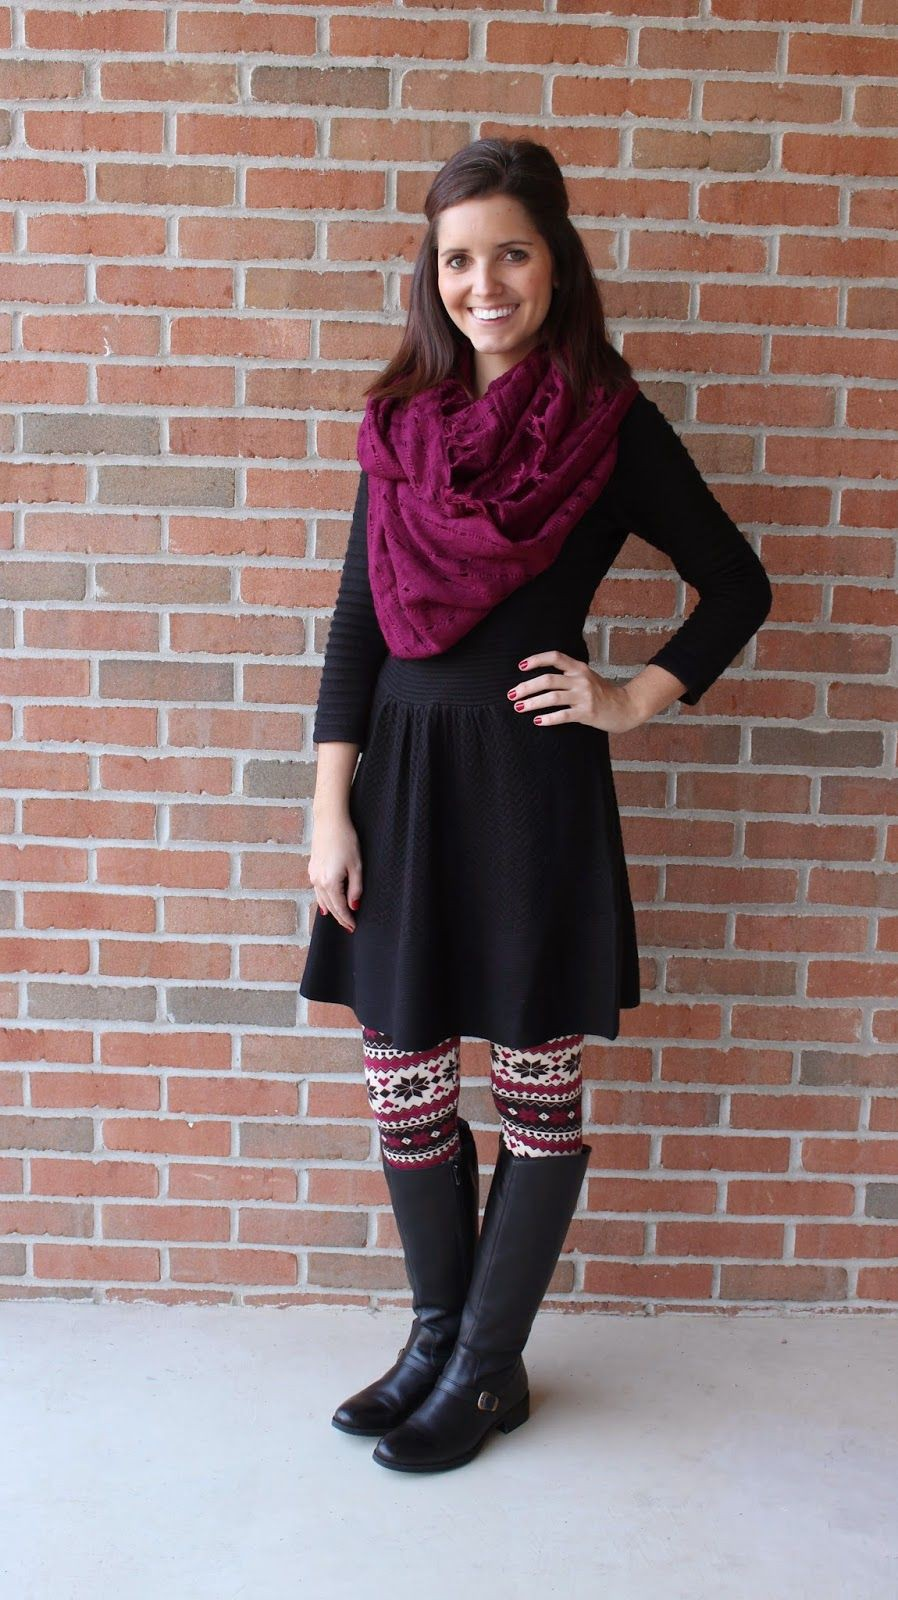 Clothing frocks with leggings, winter clothing, riding boot